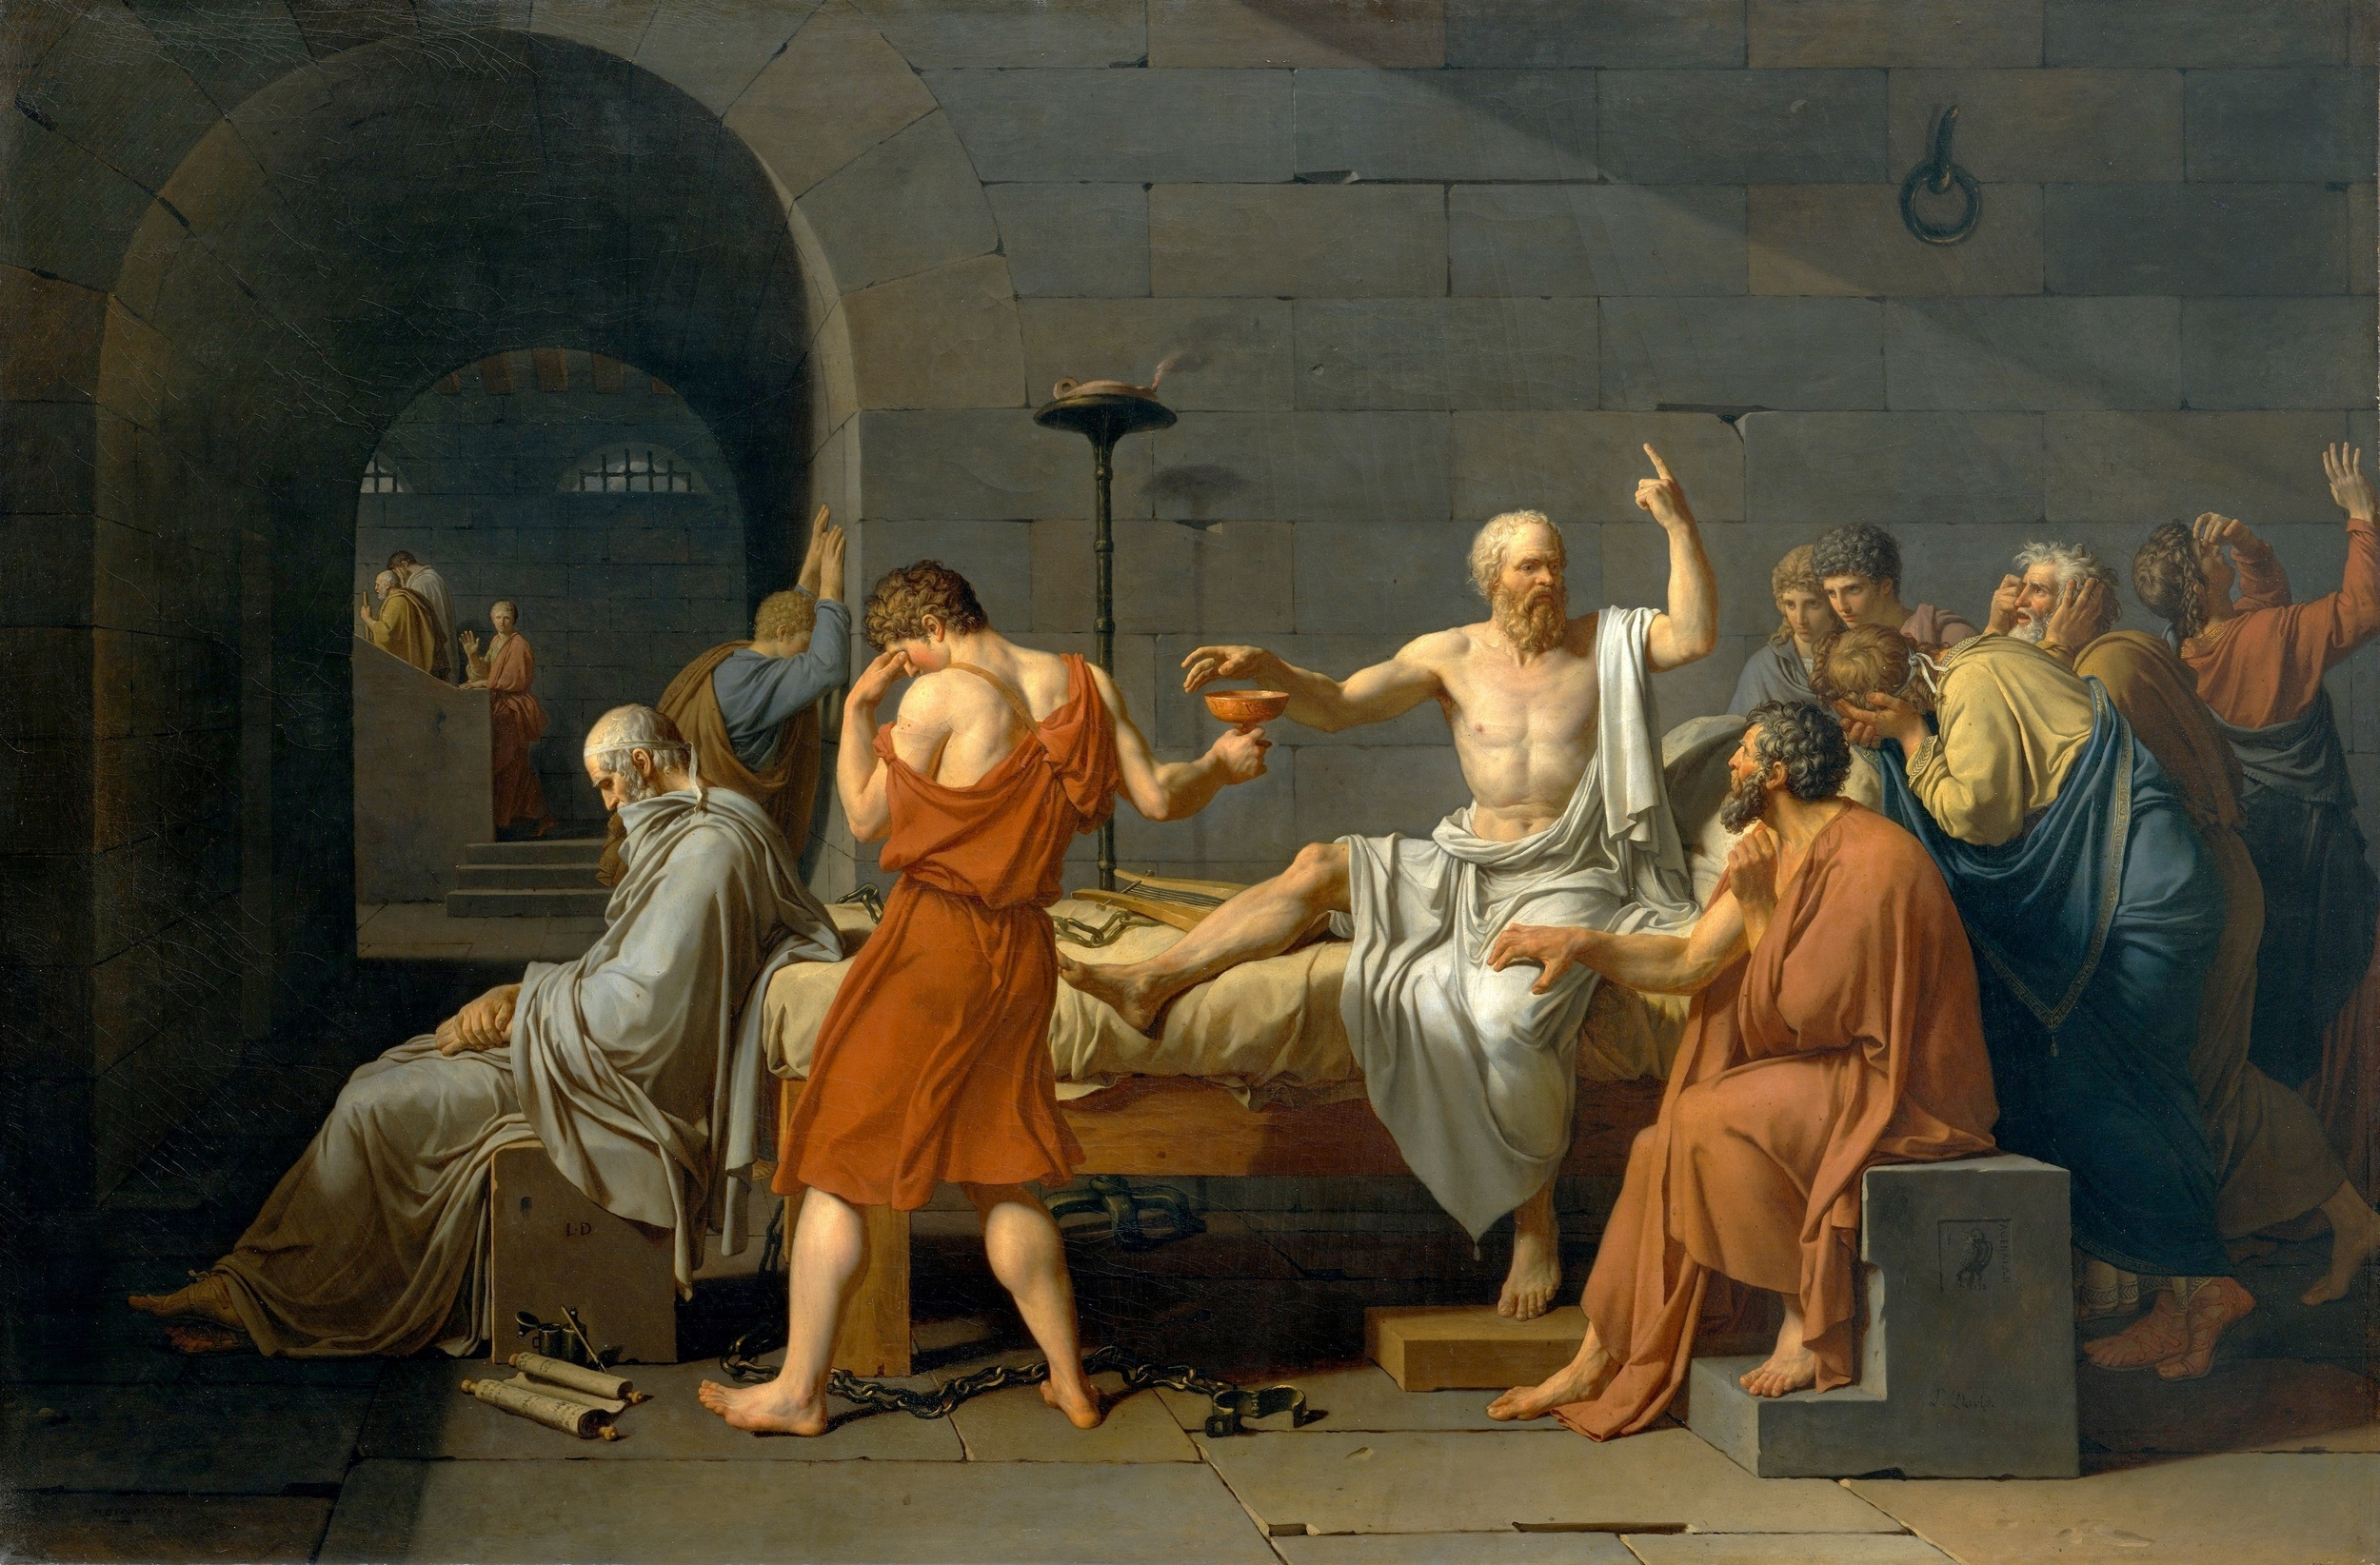 The Death of Socrates by Jacques-Louis David (a character named Ed's favourite painting)